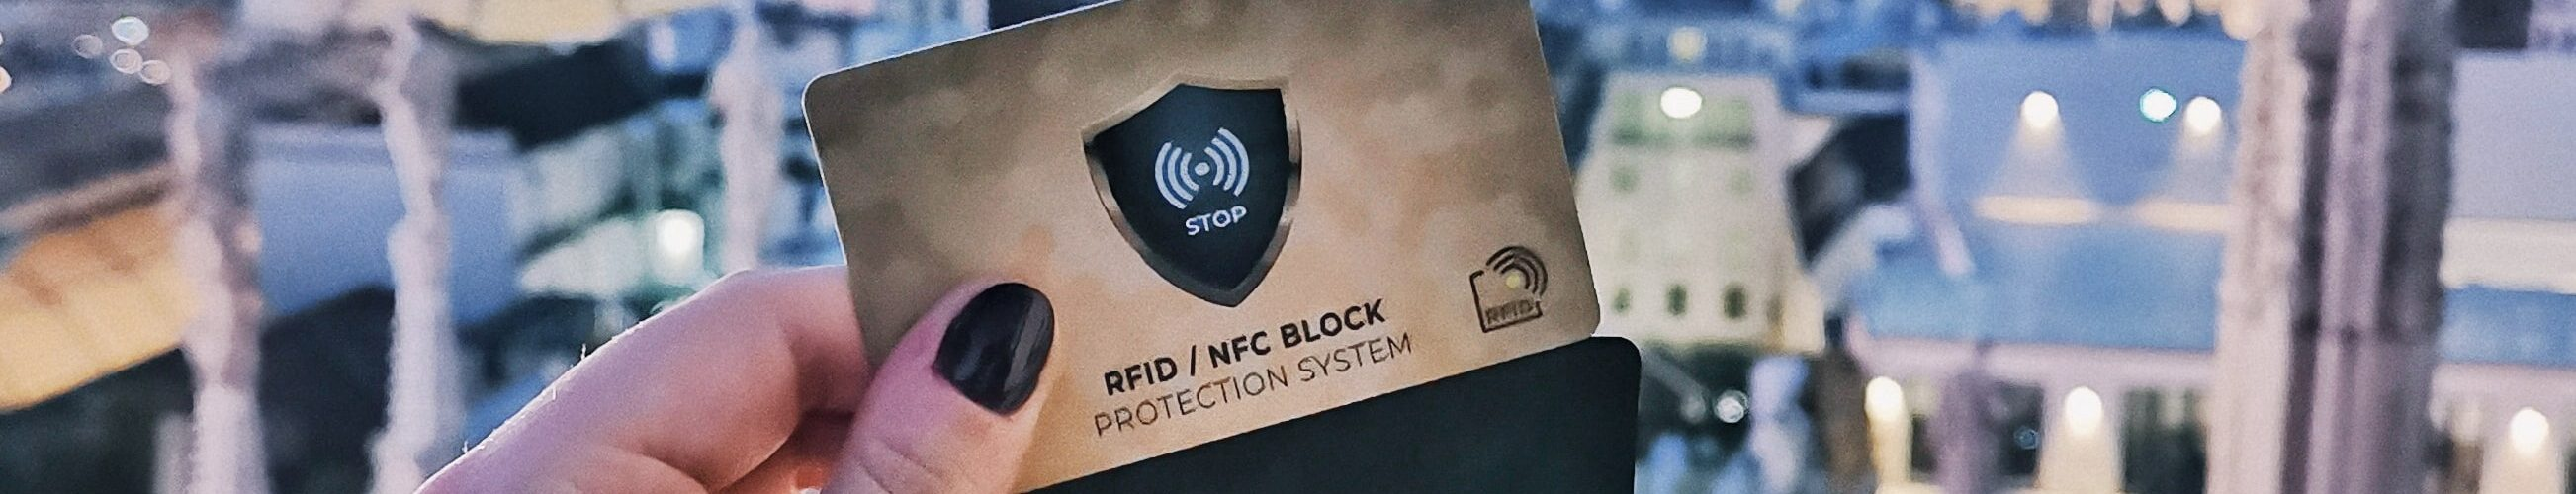 goodz rfid blocking protection truffe contactless laura fasano tecnolaura benessere tecnologico